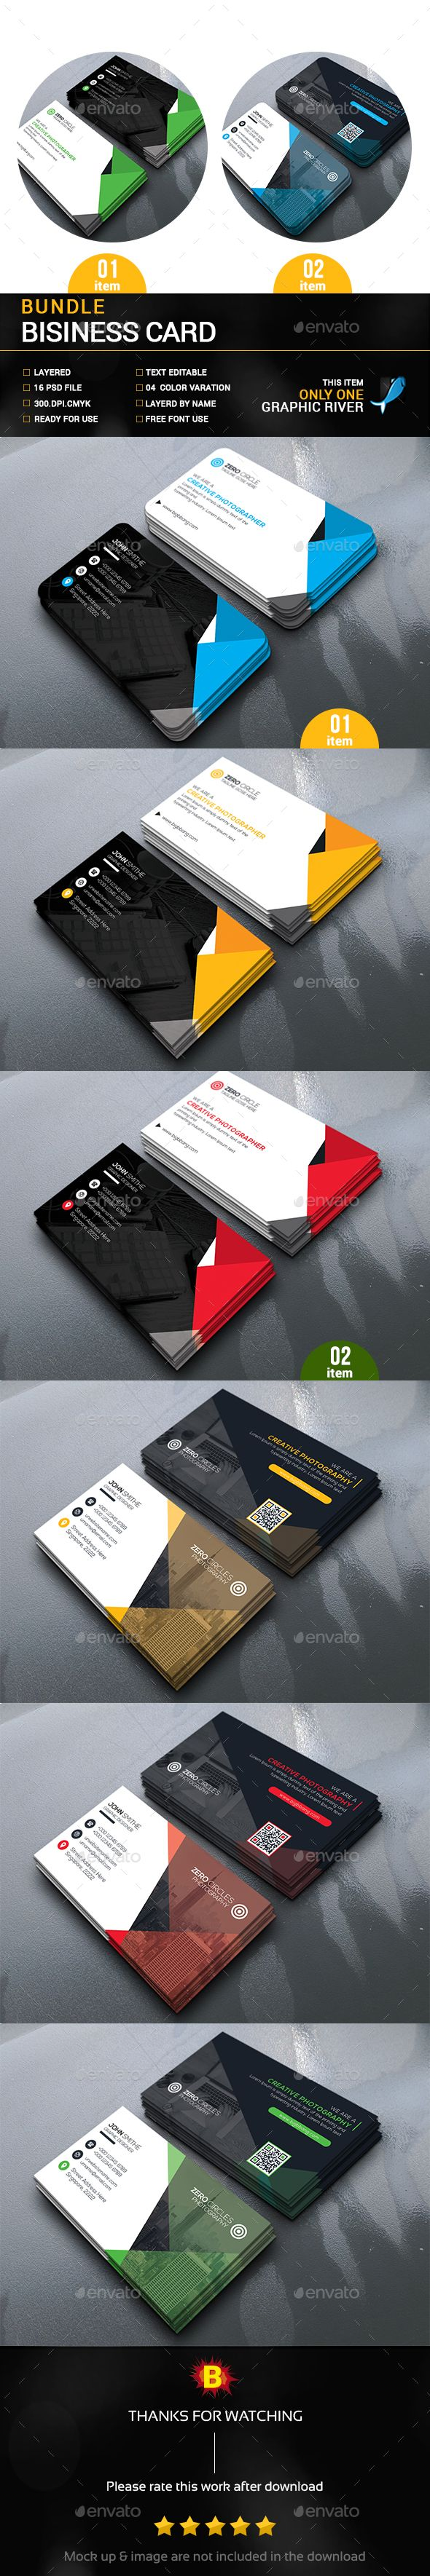 98 best business cards images on pinterest